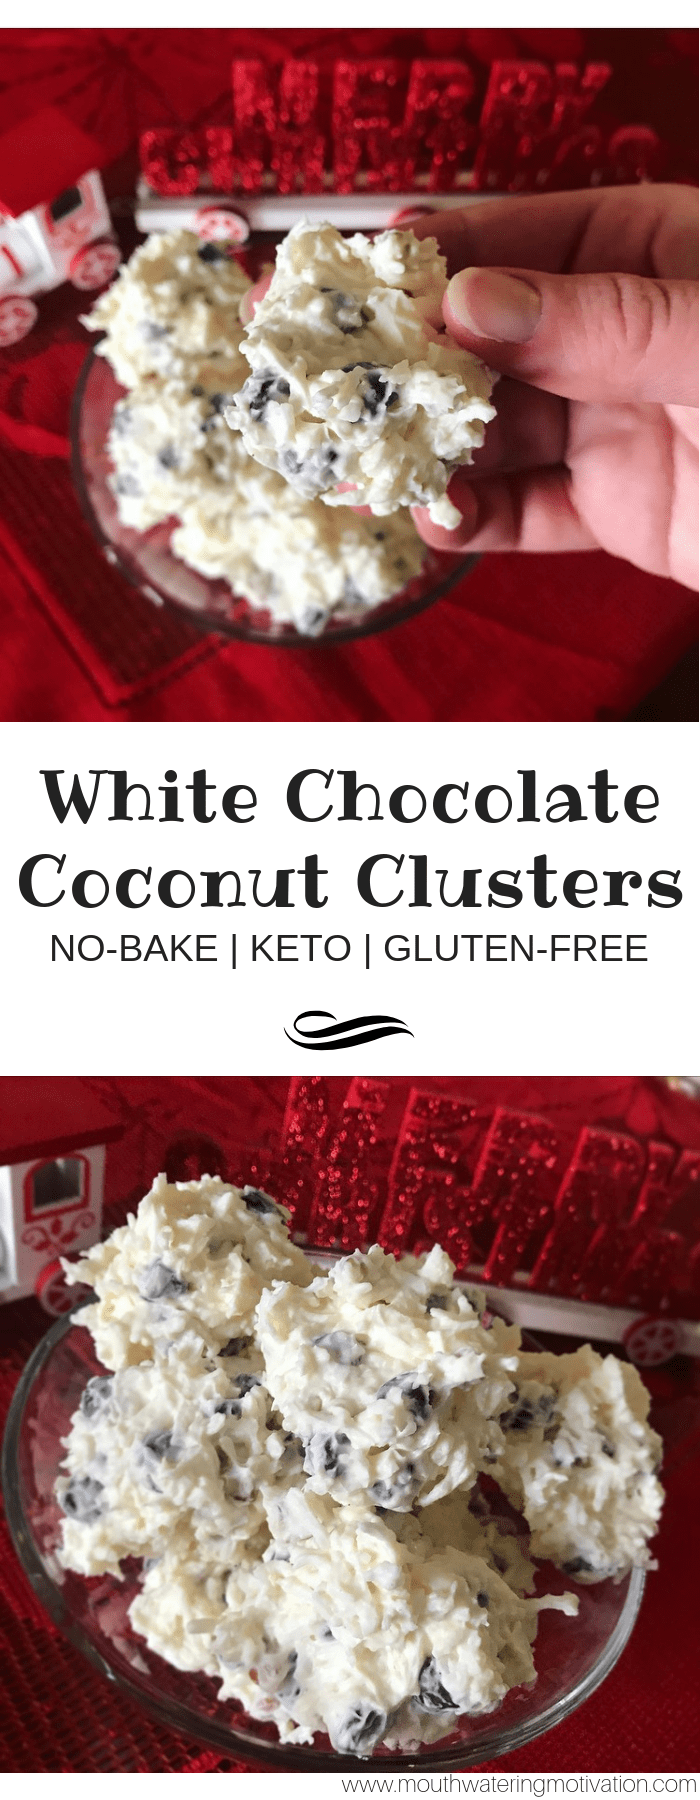 Keto White Chocolate Coconut Clusters